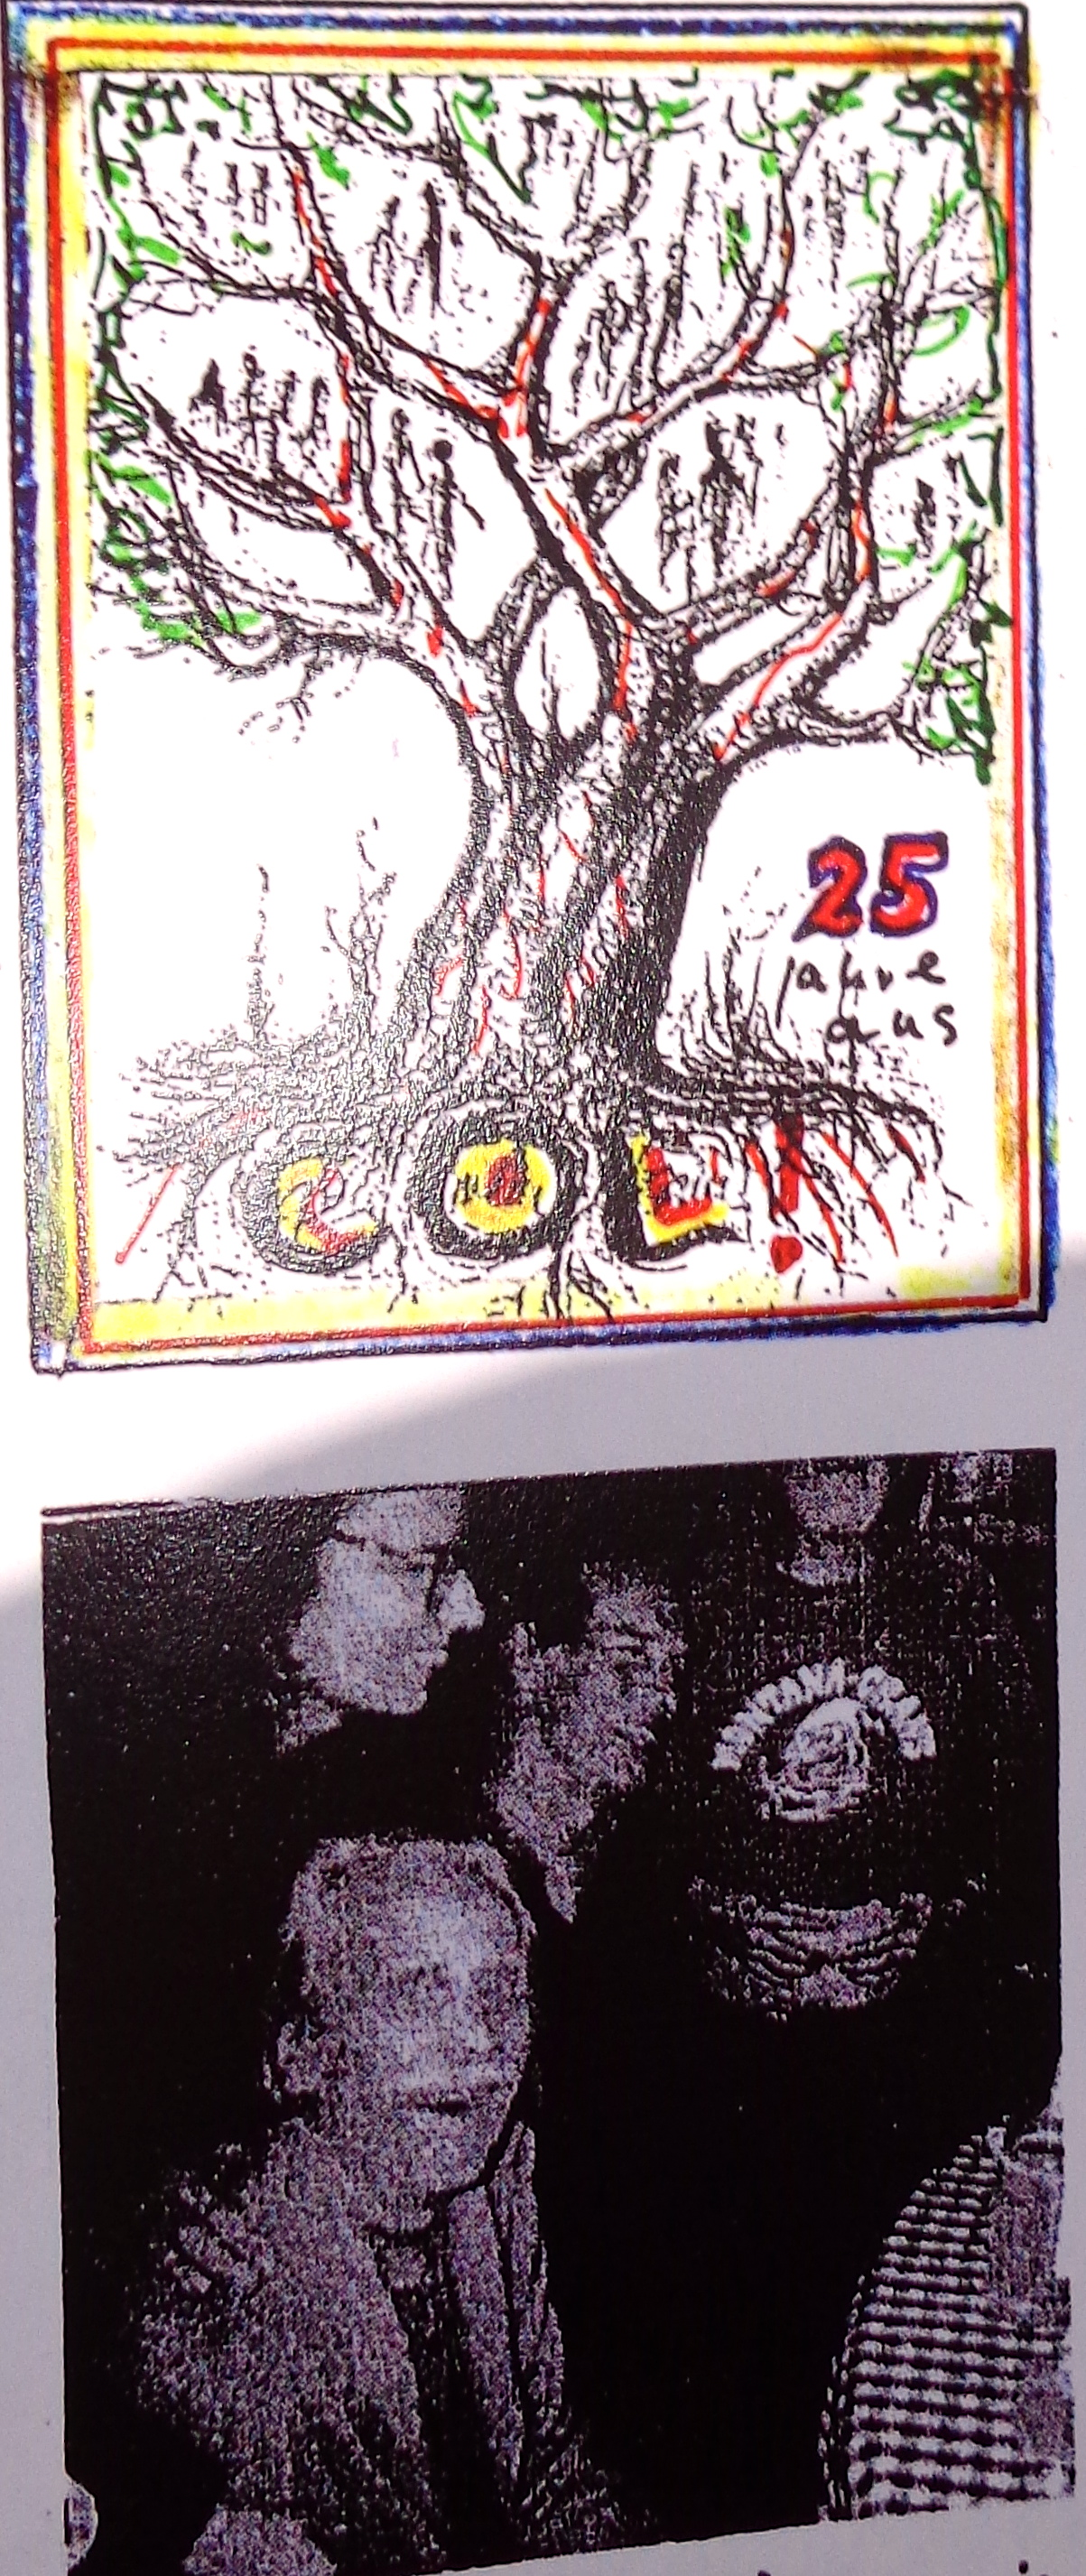 25 YEARS OF COL-ART 1993